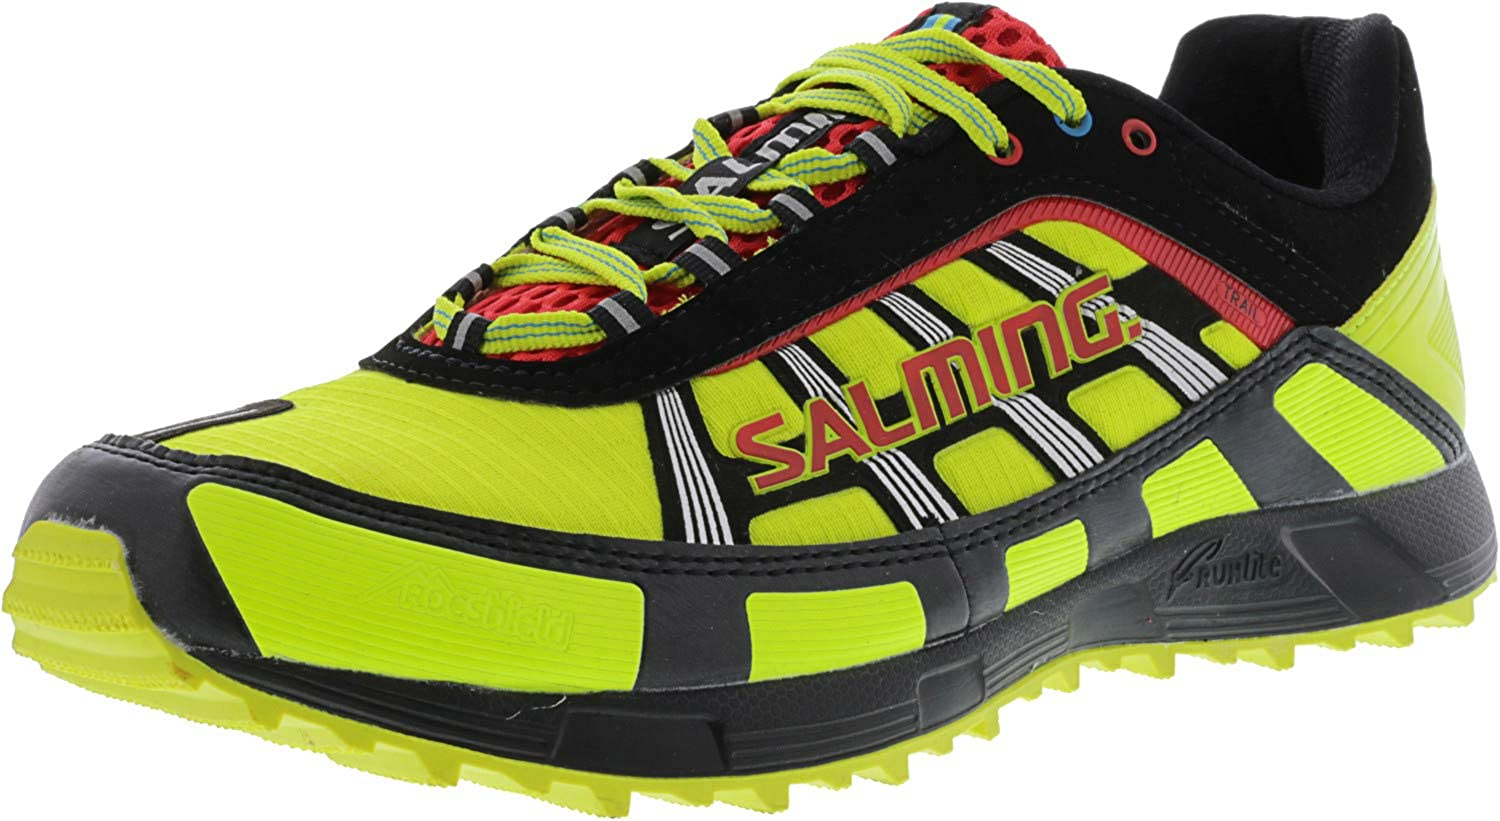 Salming Men s Trail T2 Ankle-High Running Shoe